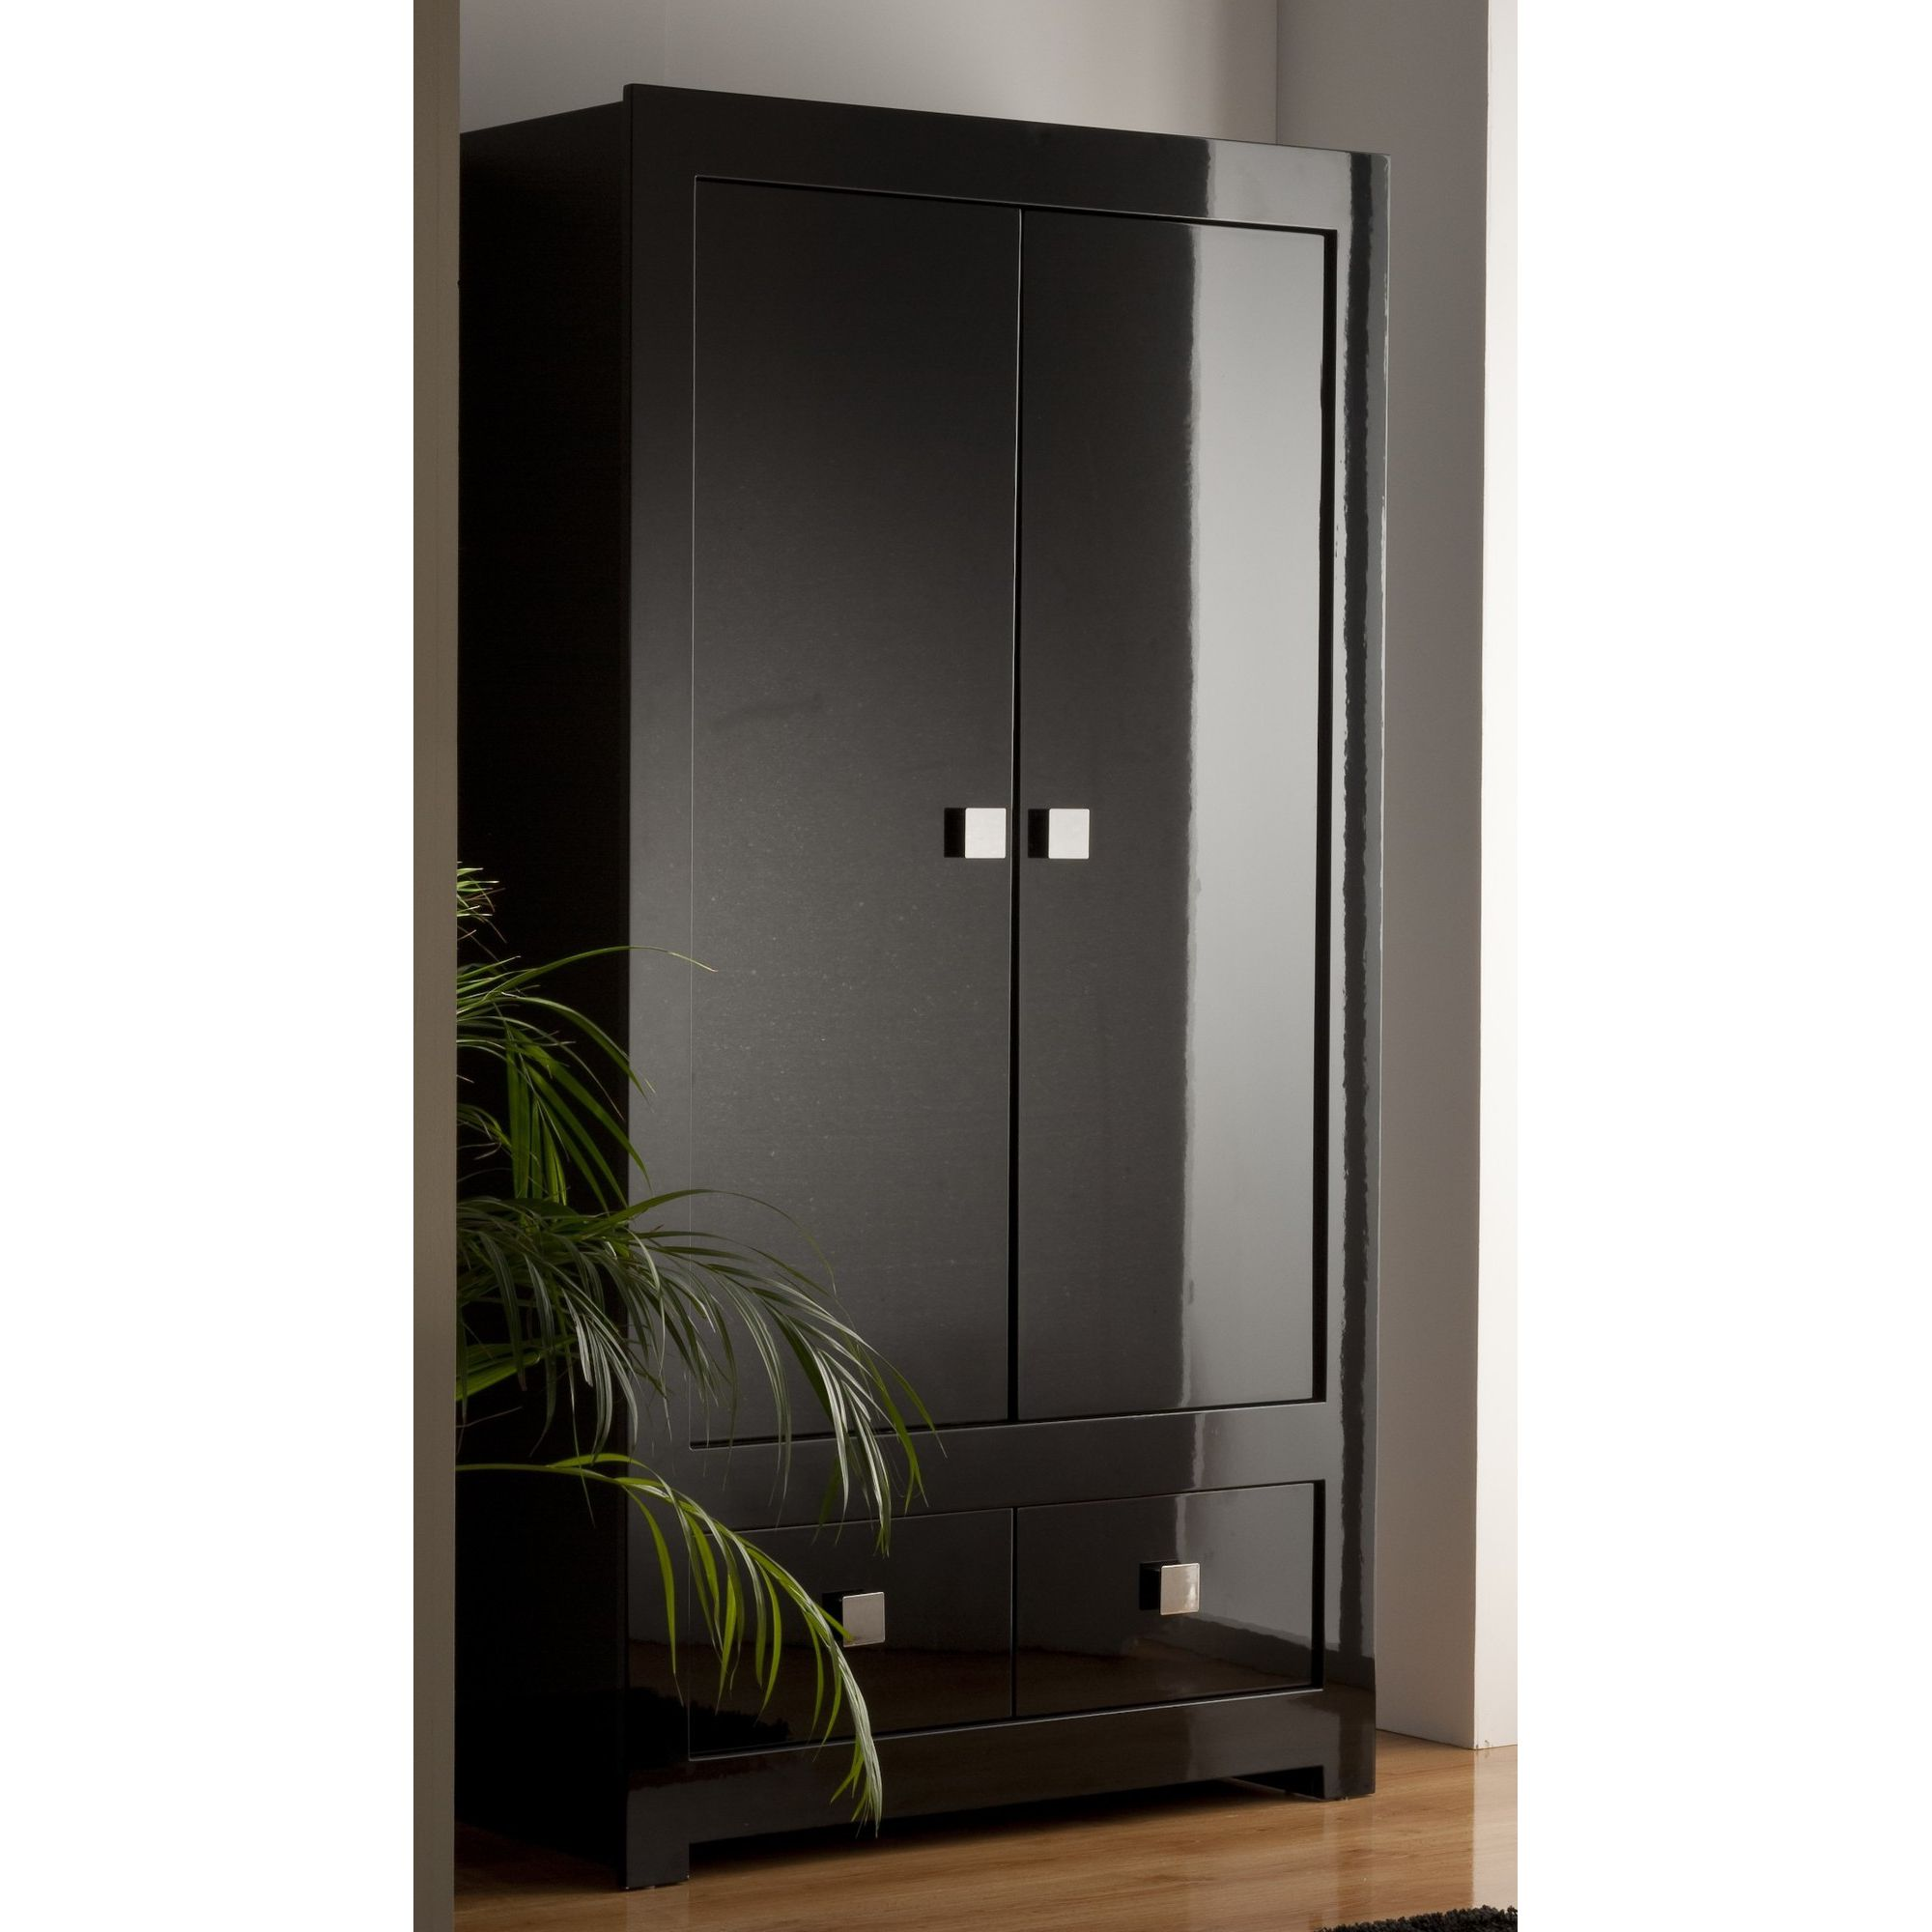 World Furniture Modena Two Drawer Wardrobe in High Black Gloss at Tesco Direct